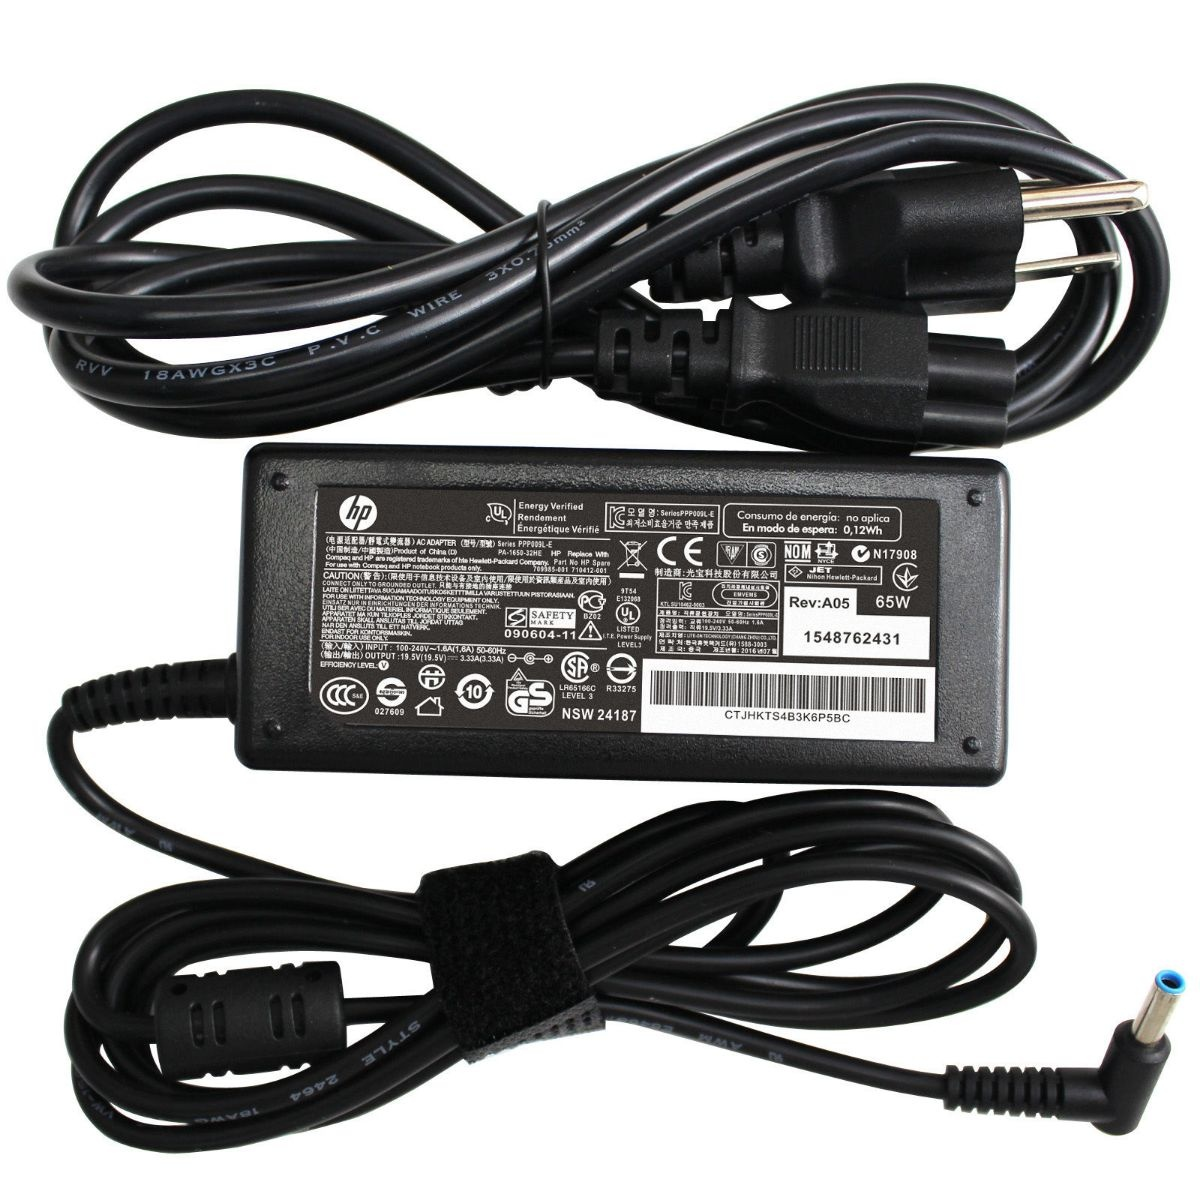 OEM HP Replacement Laptop Charger Power Supply Adapter - PPP009C